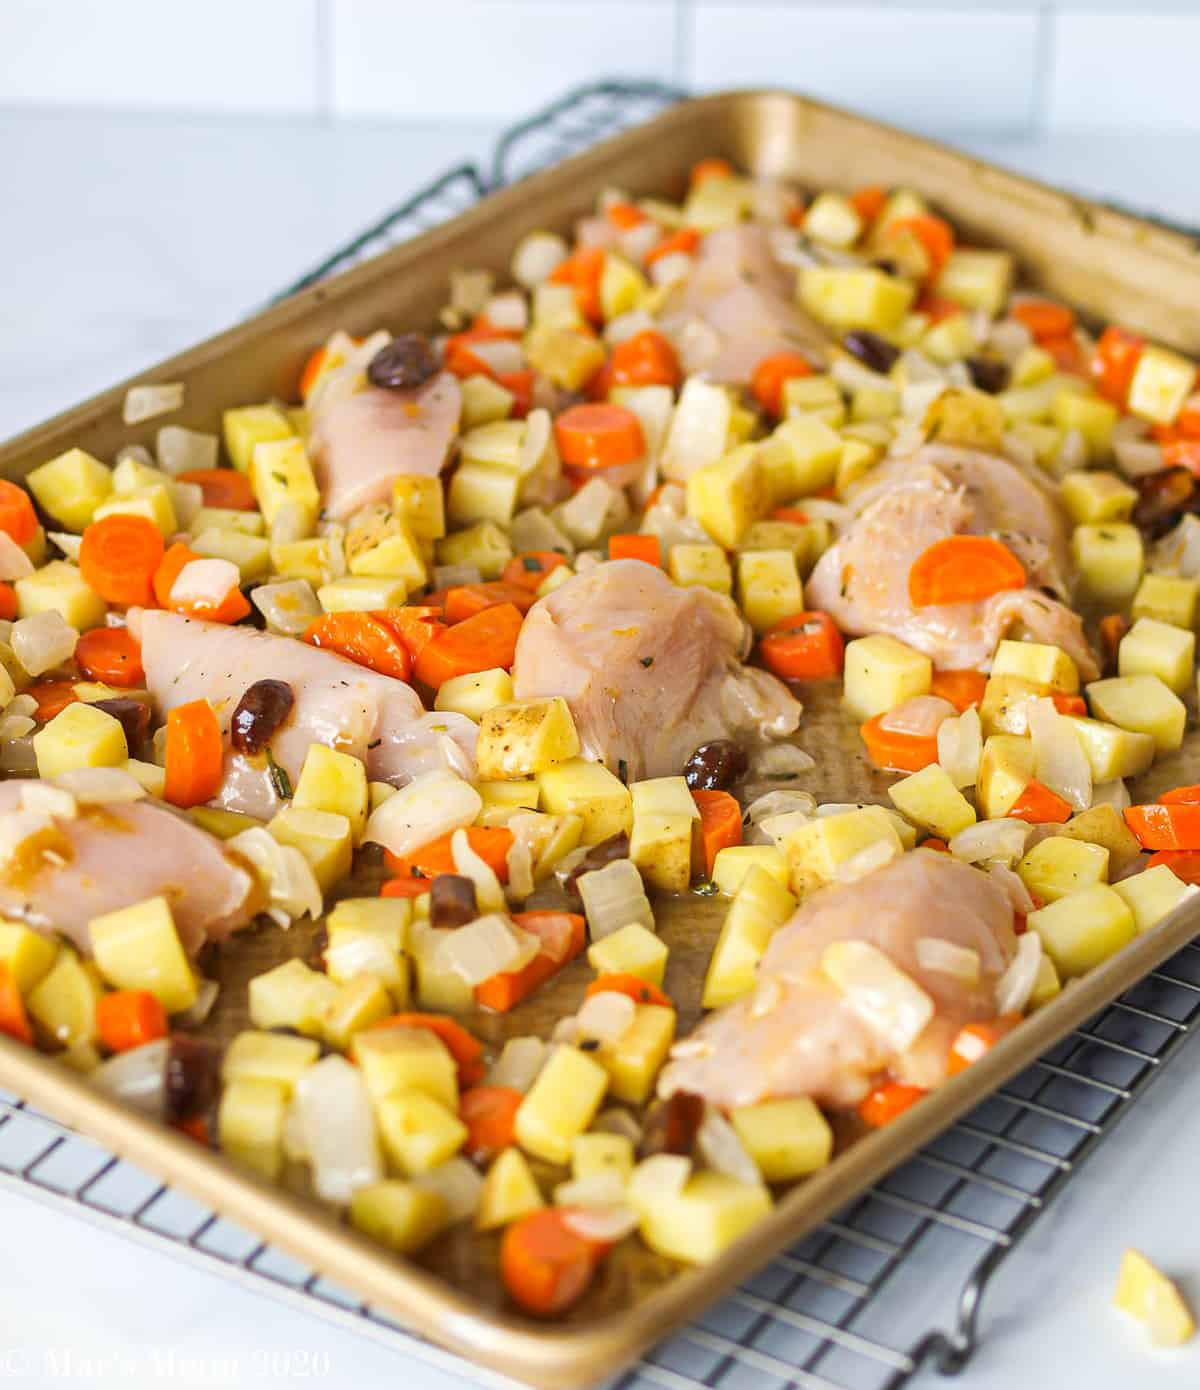 The chicken and apricots mixed into the sheet of roasted veggies